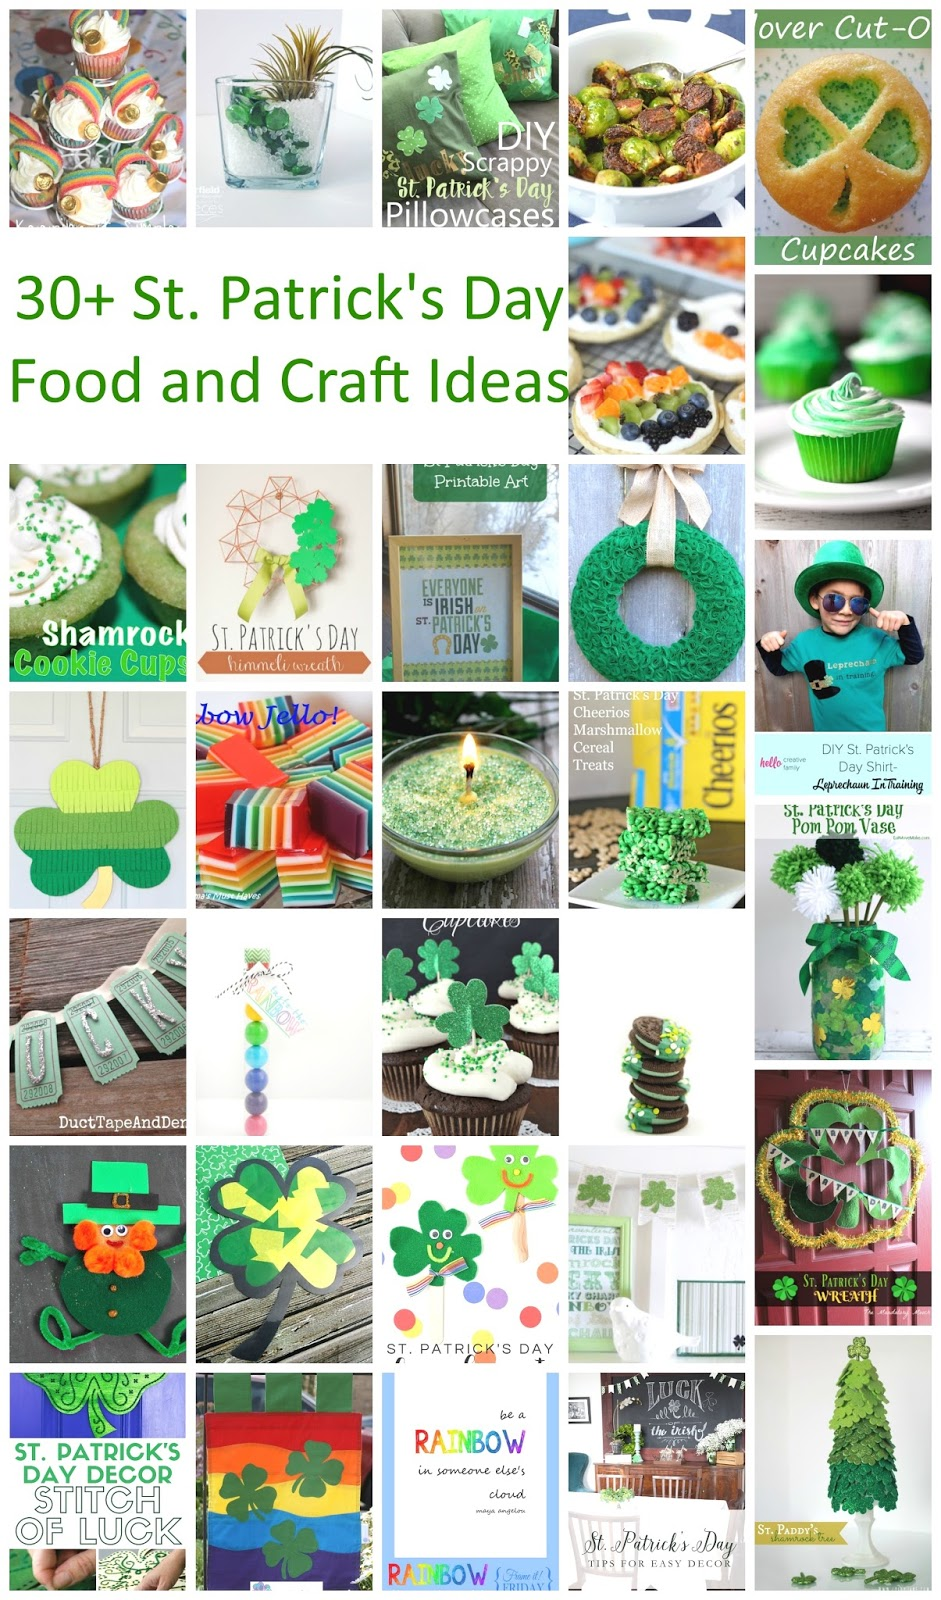 30+ St. Patrick's Day Foods and Crafts